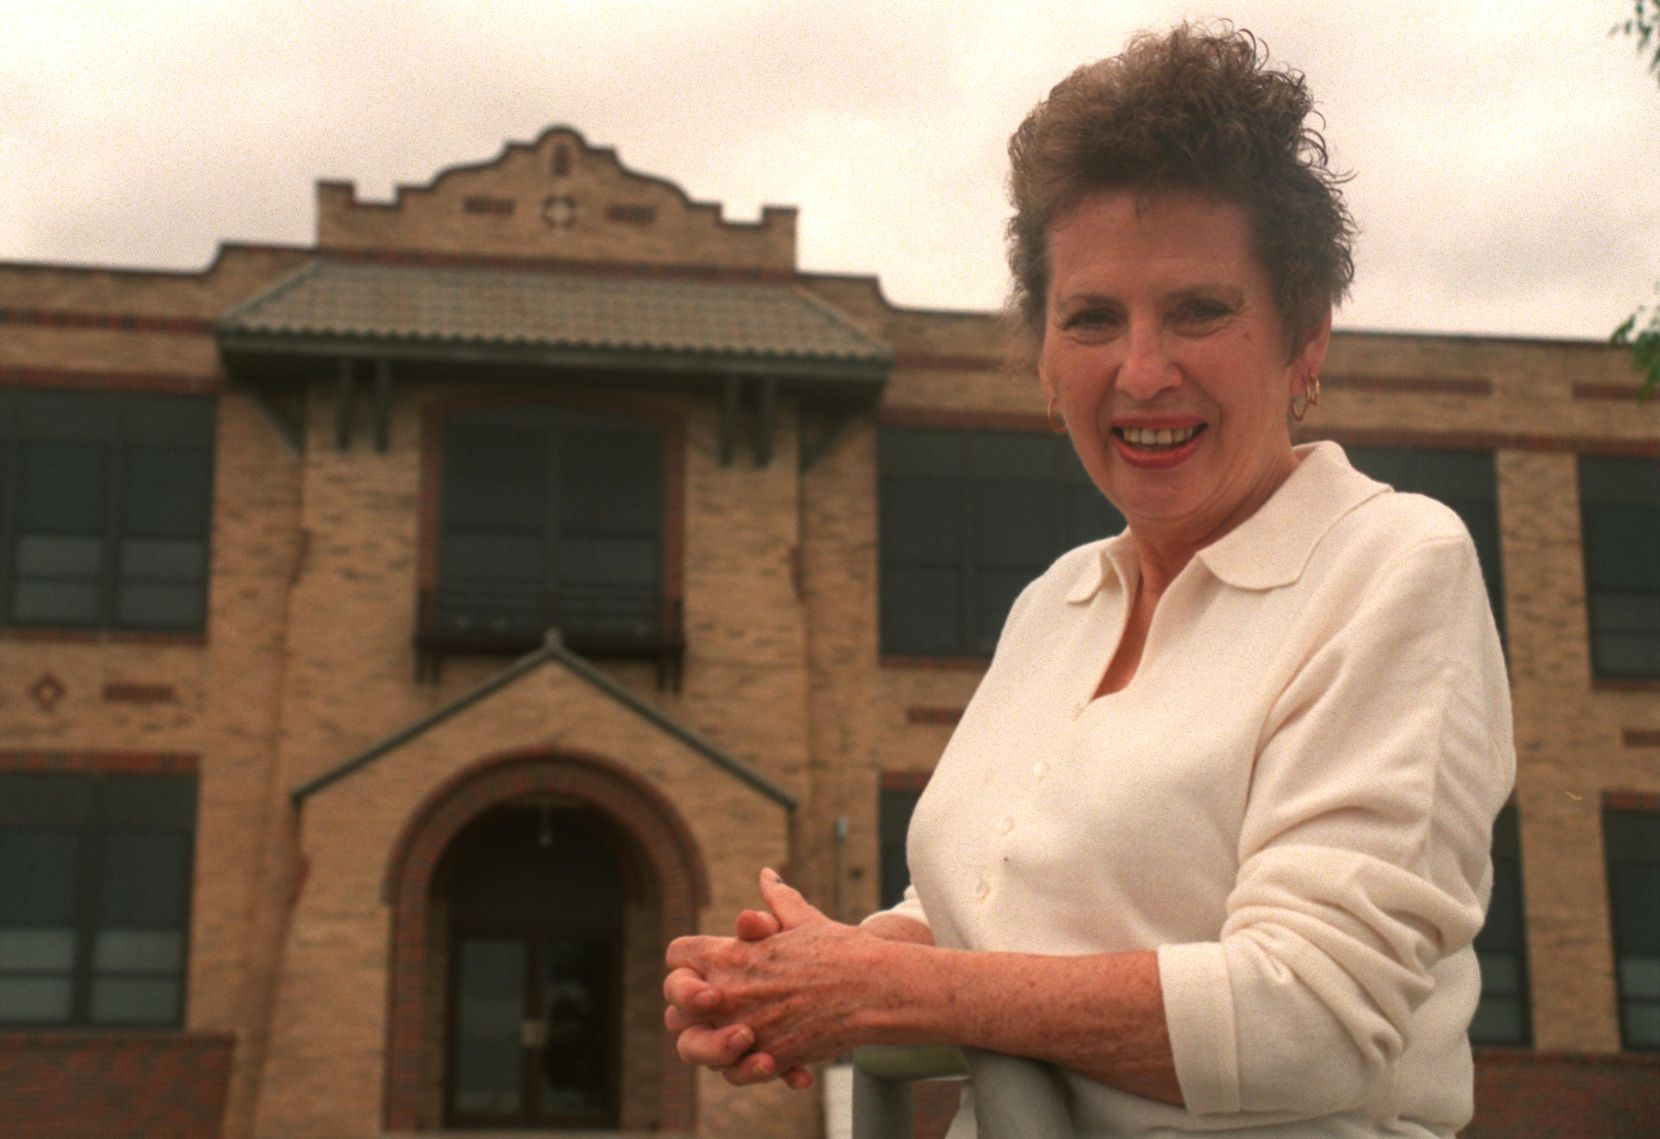 Frankie Groves stands in front of West Texas High School. It used to be Stinnette when she played football there.